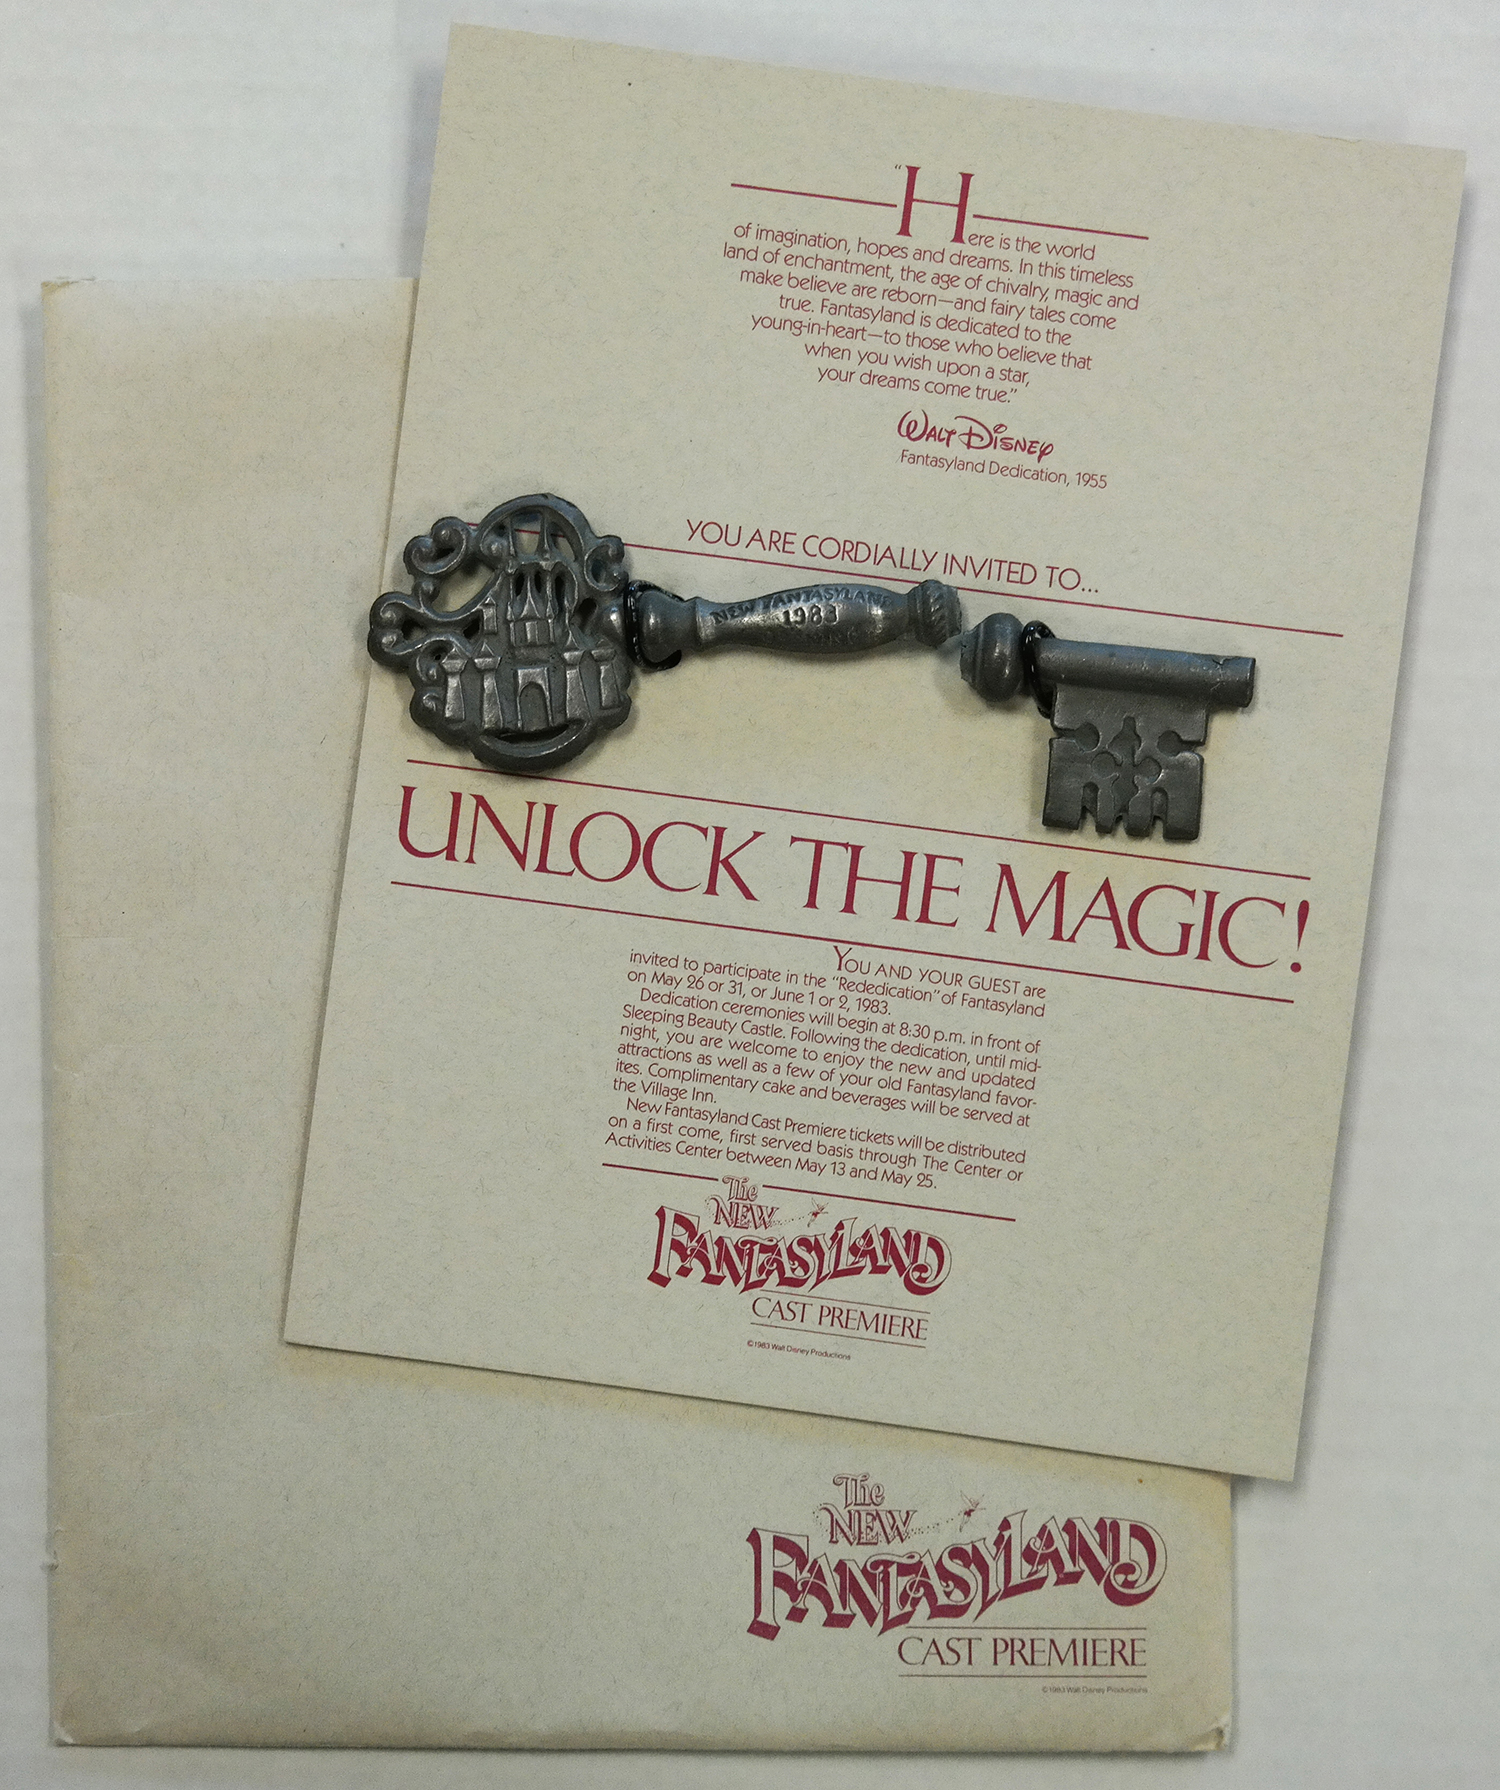 New fantasyland cast premiere invitation id aprdisneyland17309 new fantasyland cast premiere invitation id aprdisneyland17309 stopboris Images